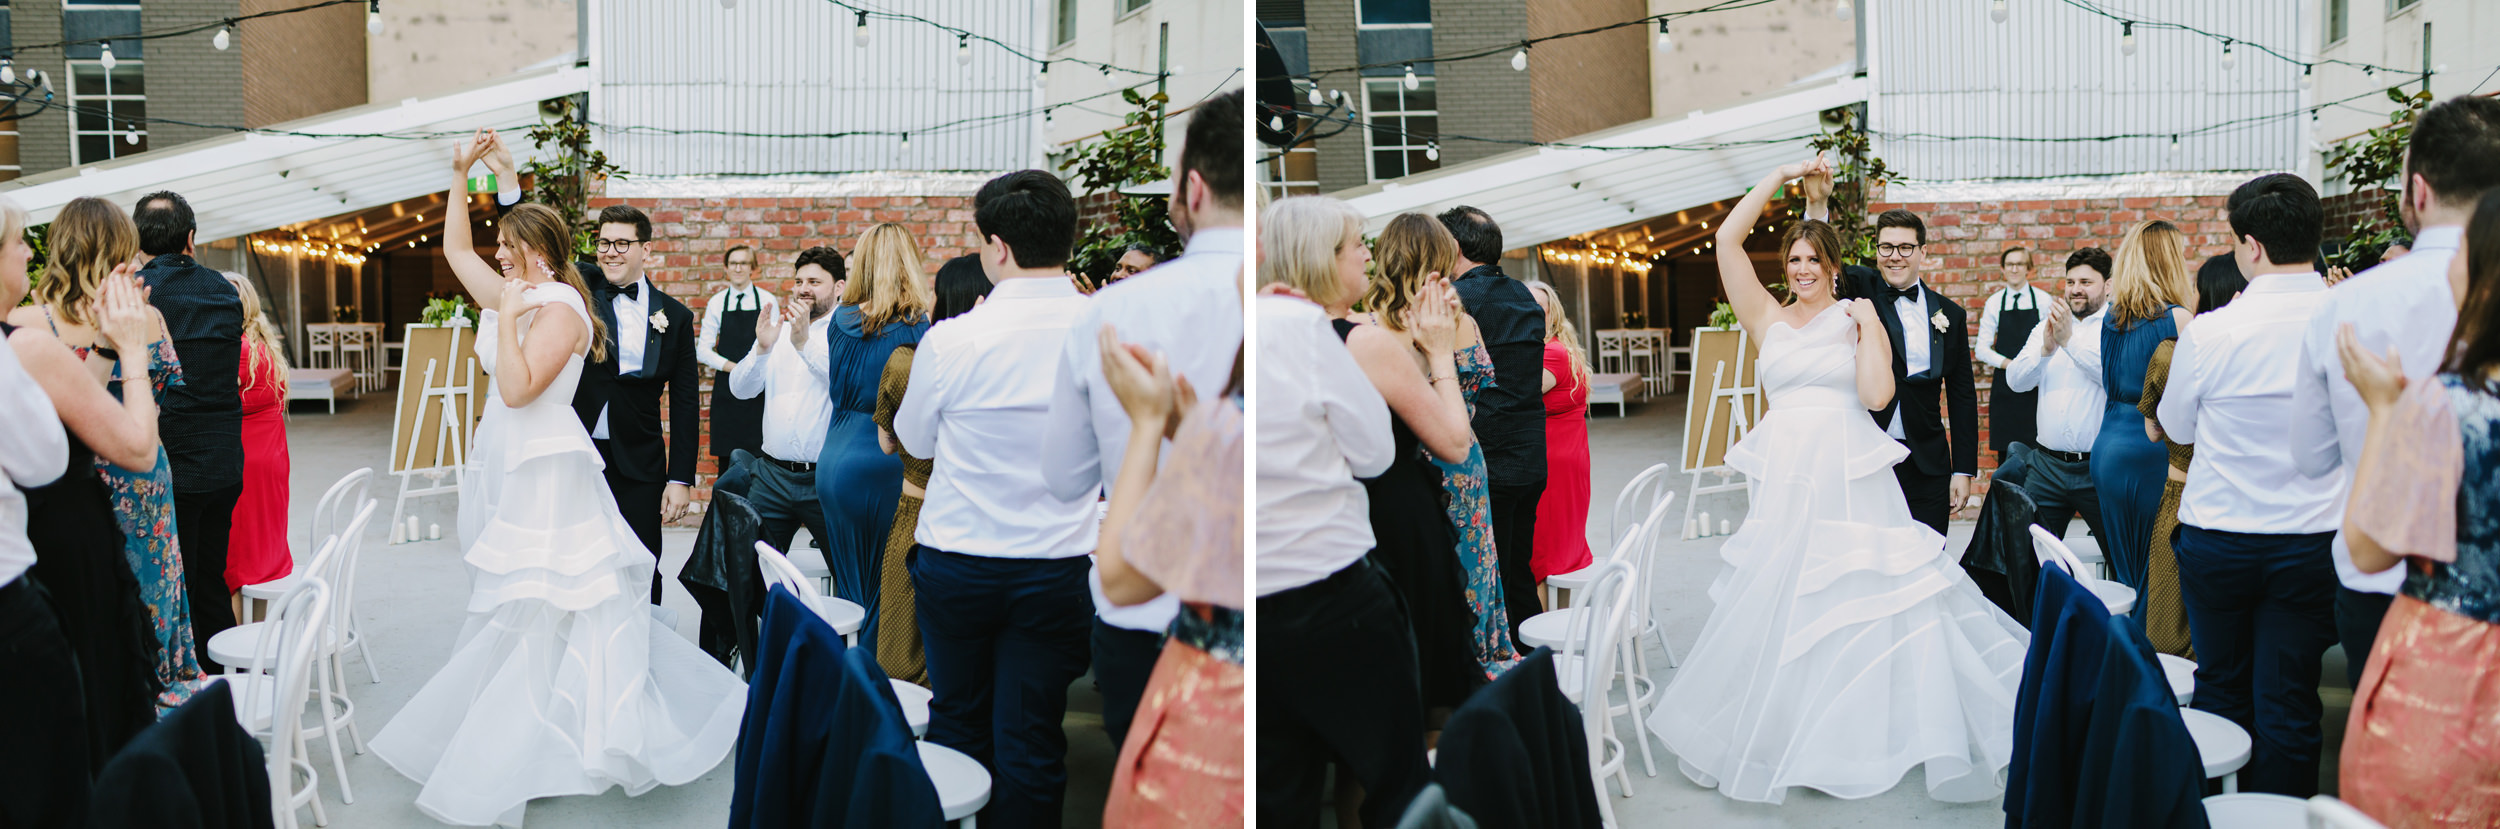 Melbourne_City_Rooftop_Wedding_Tyson_Brigette089.JPG